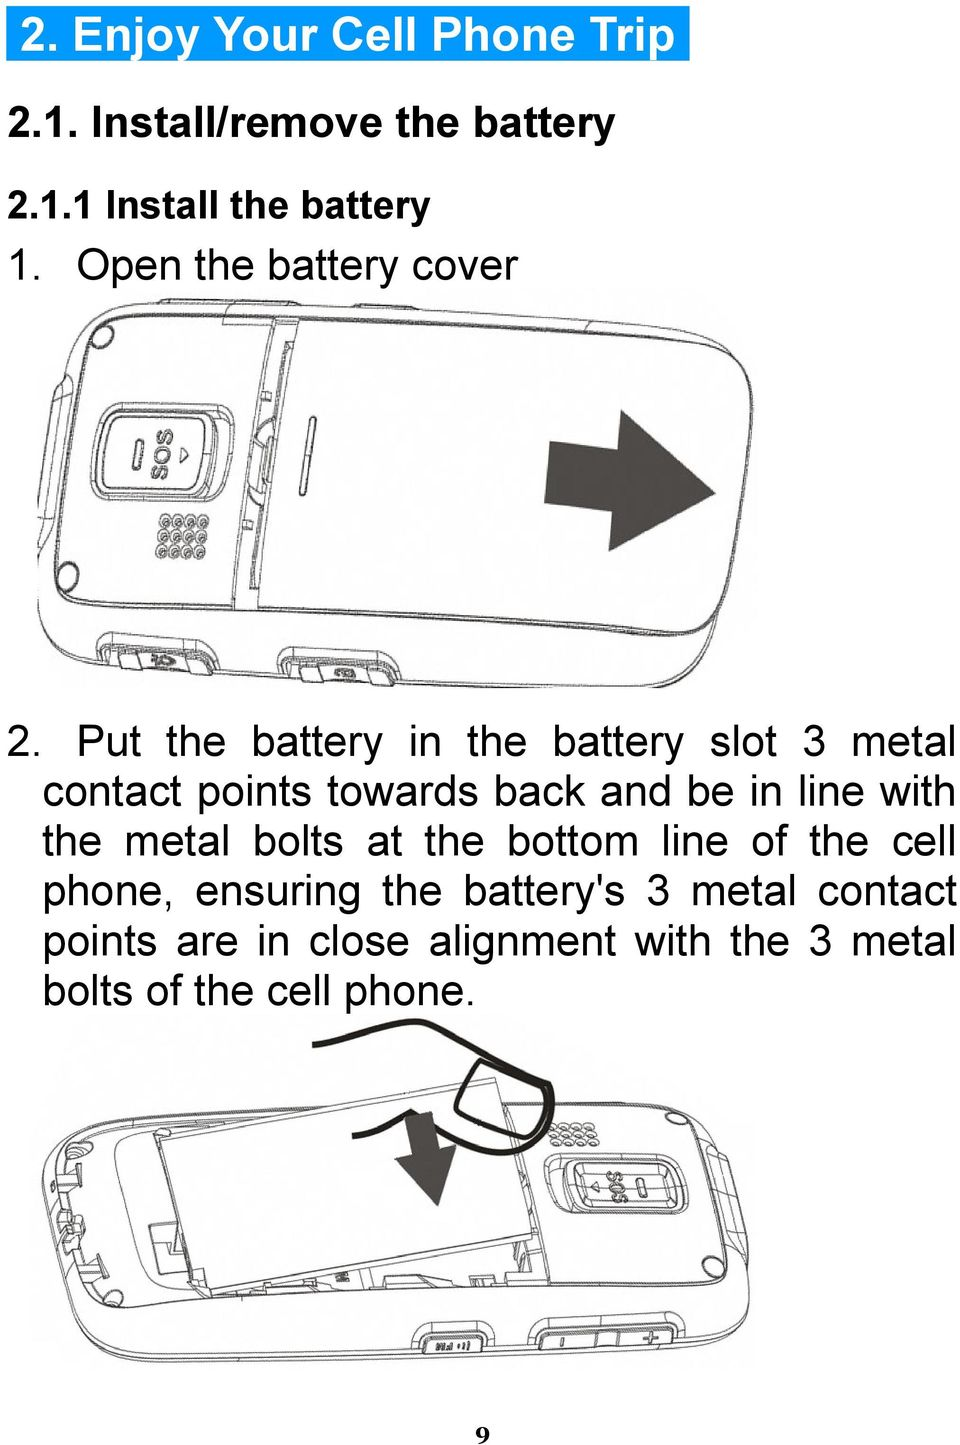 Put the battery in the battery slot 3 metal contact points towards back and be in line with